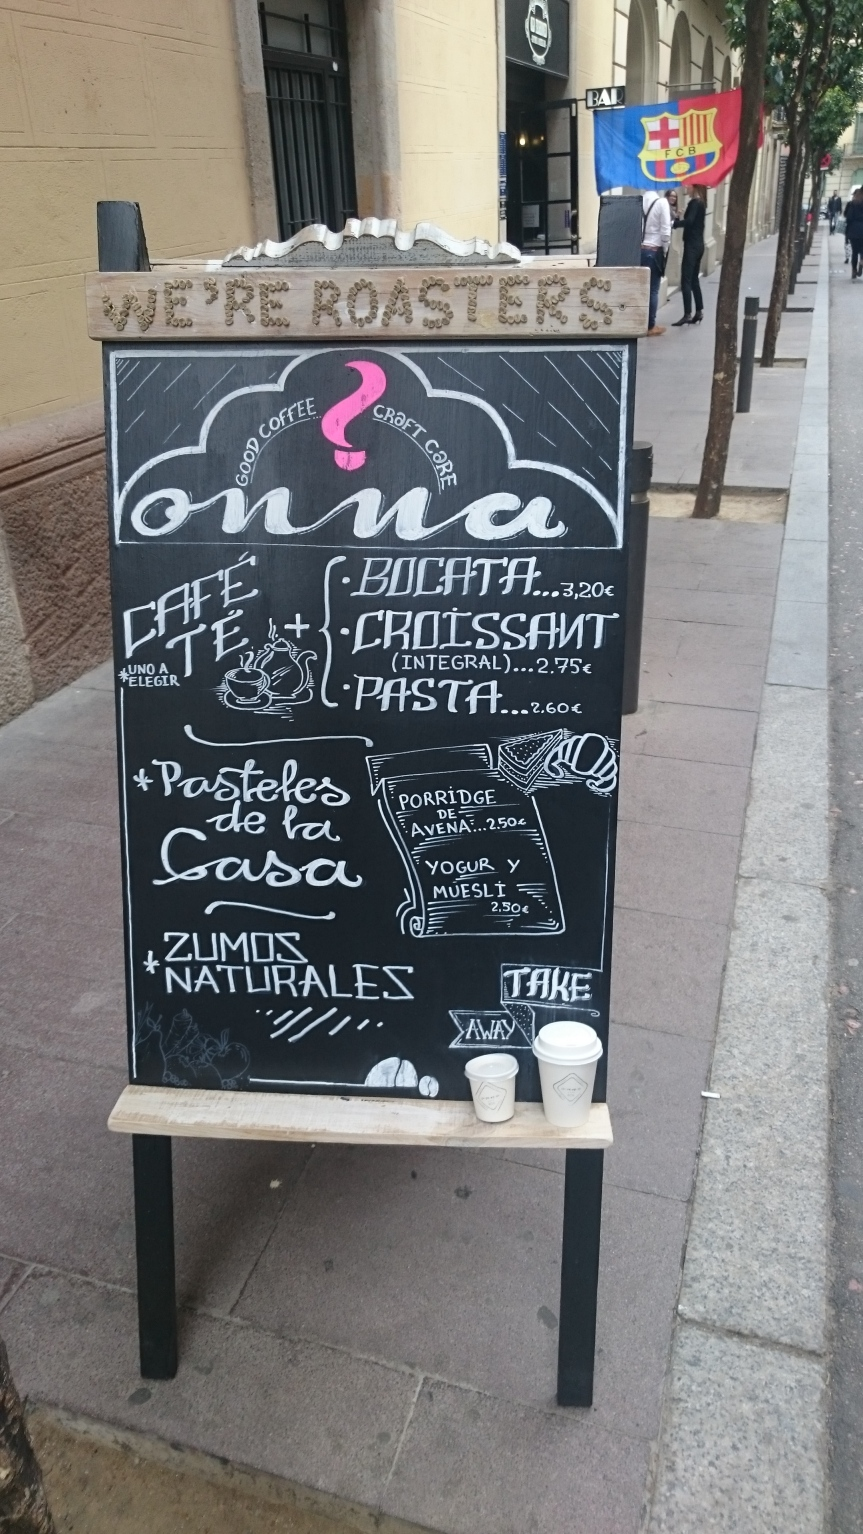 Coffee bar review: Onna Café, Barcelona